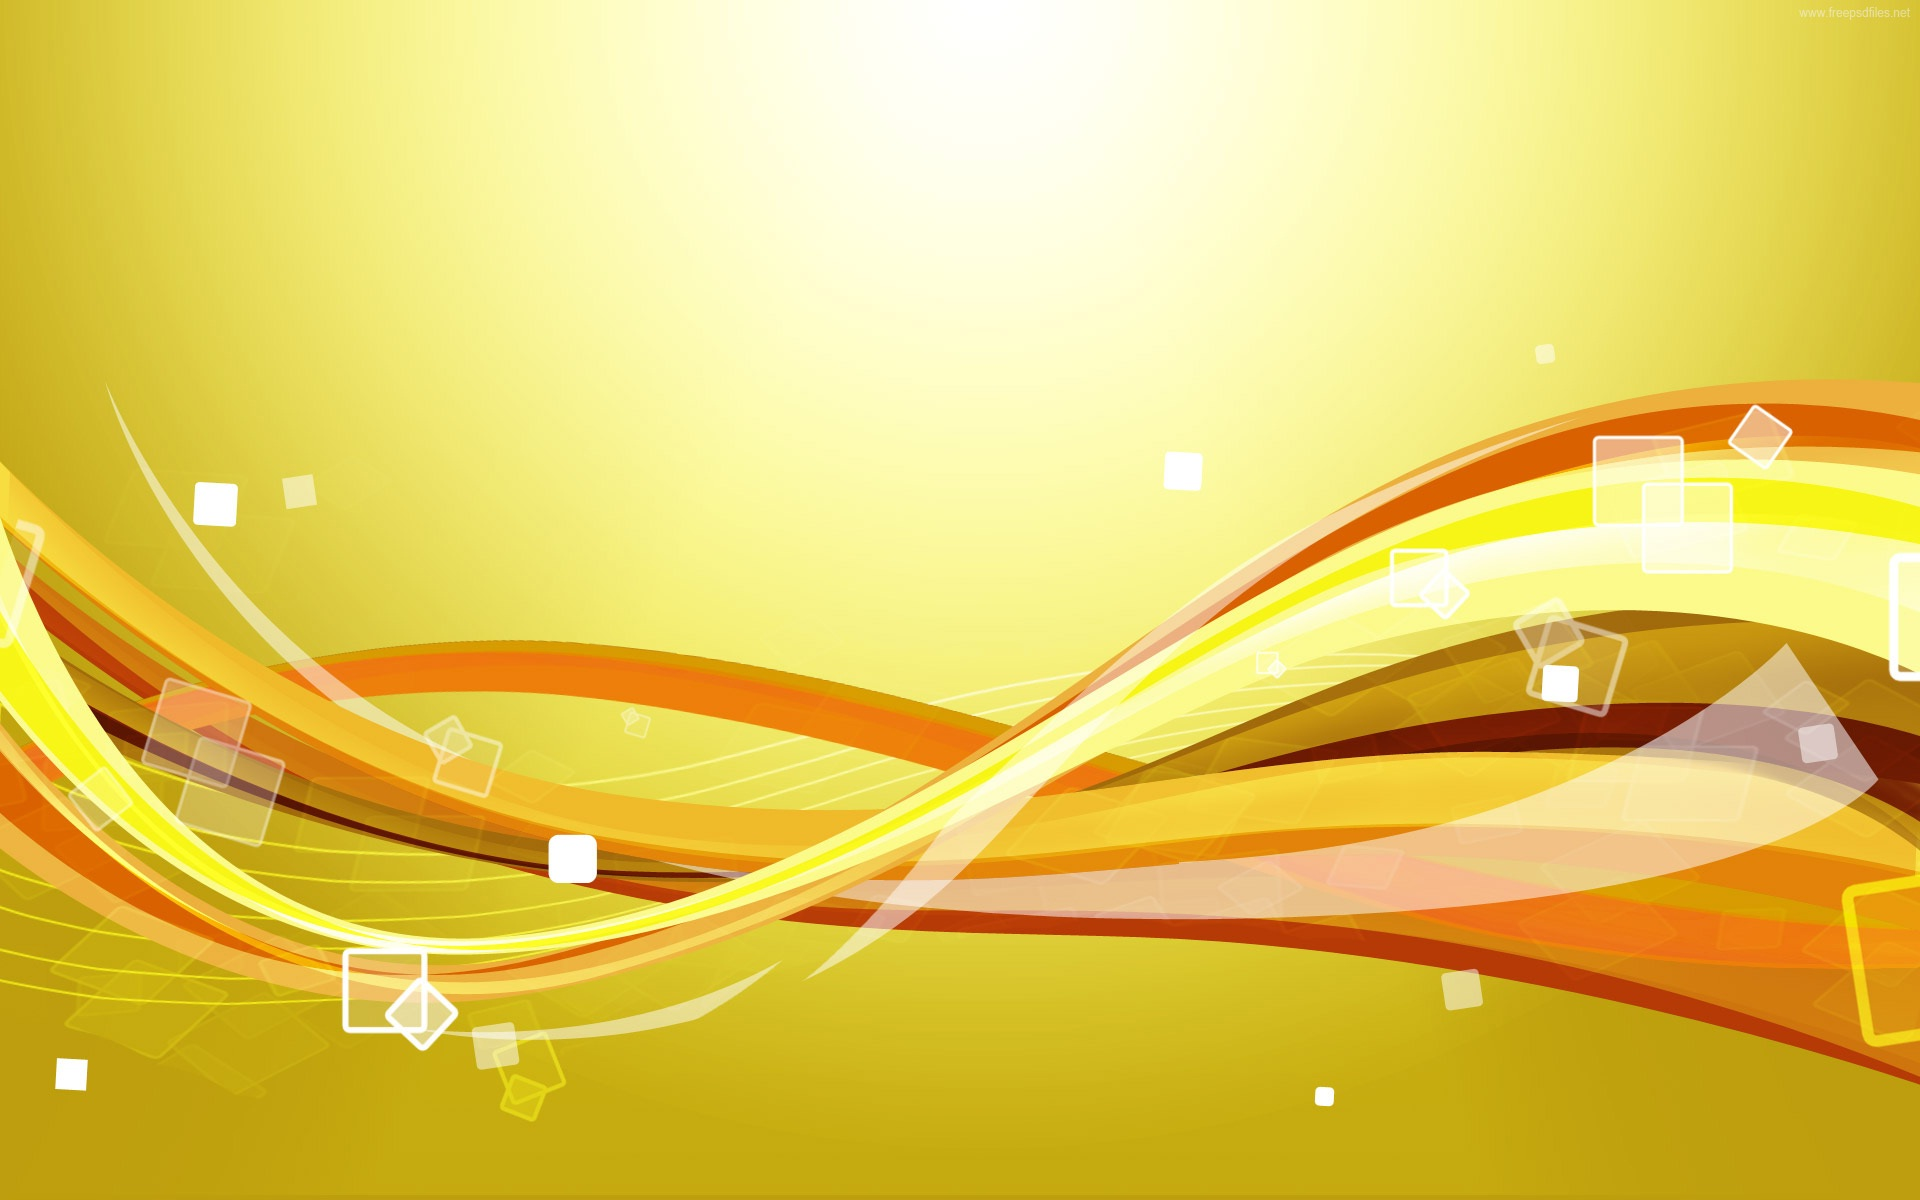 Shine golden theme abstract background wallpapers | HD Wallpapers Rocks